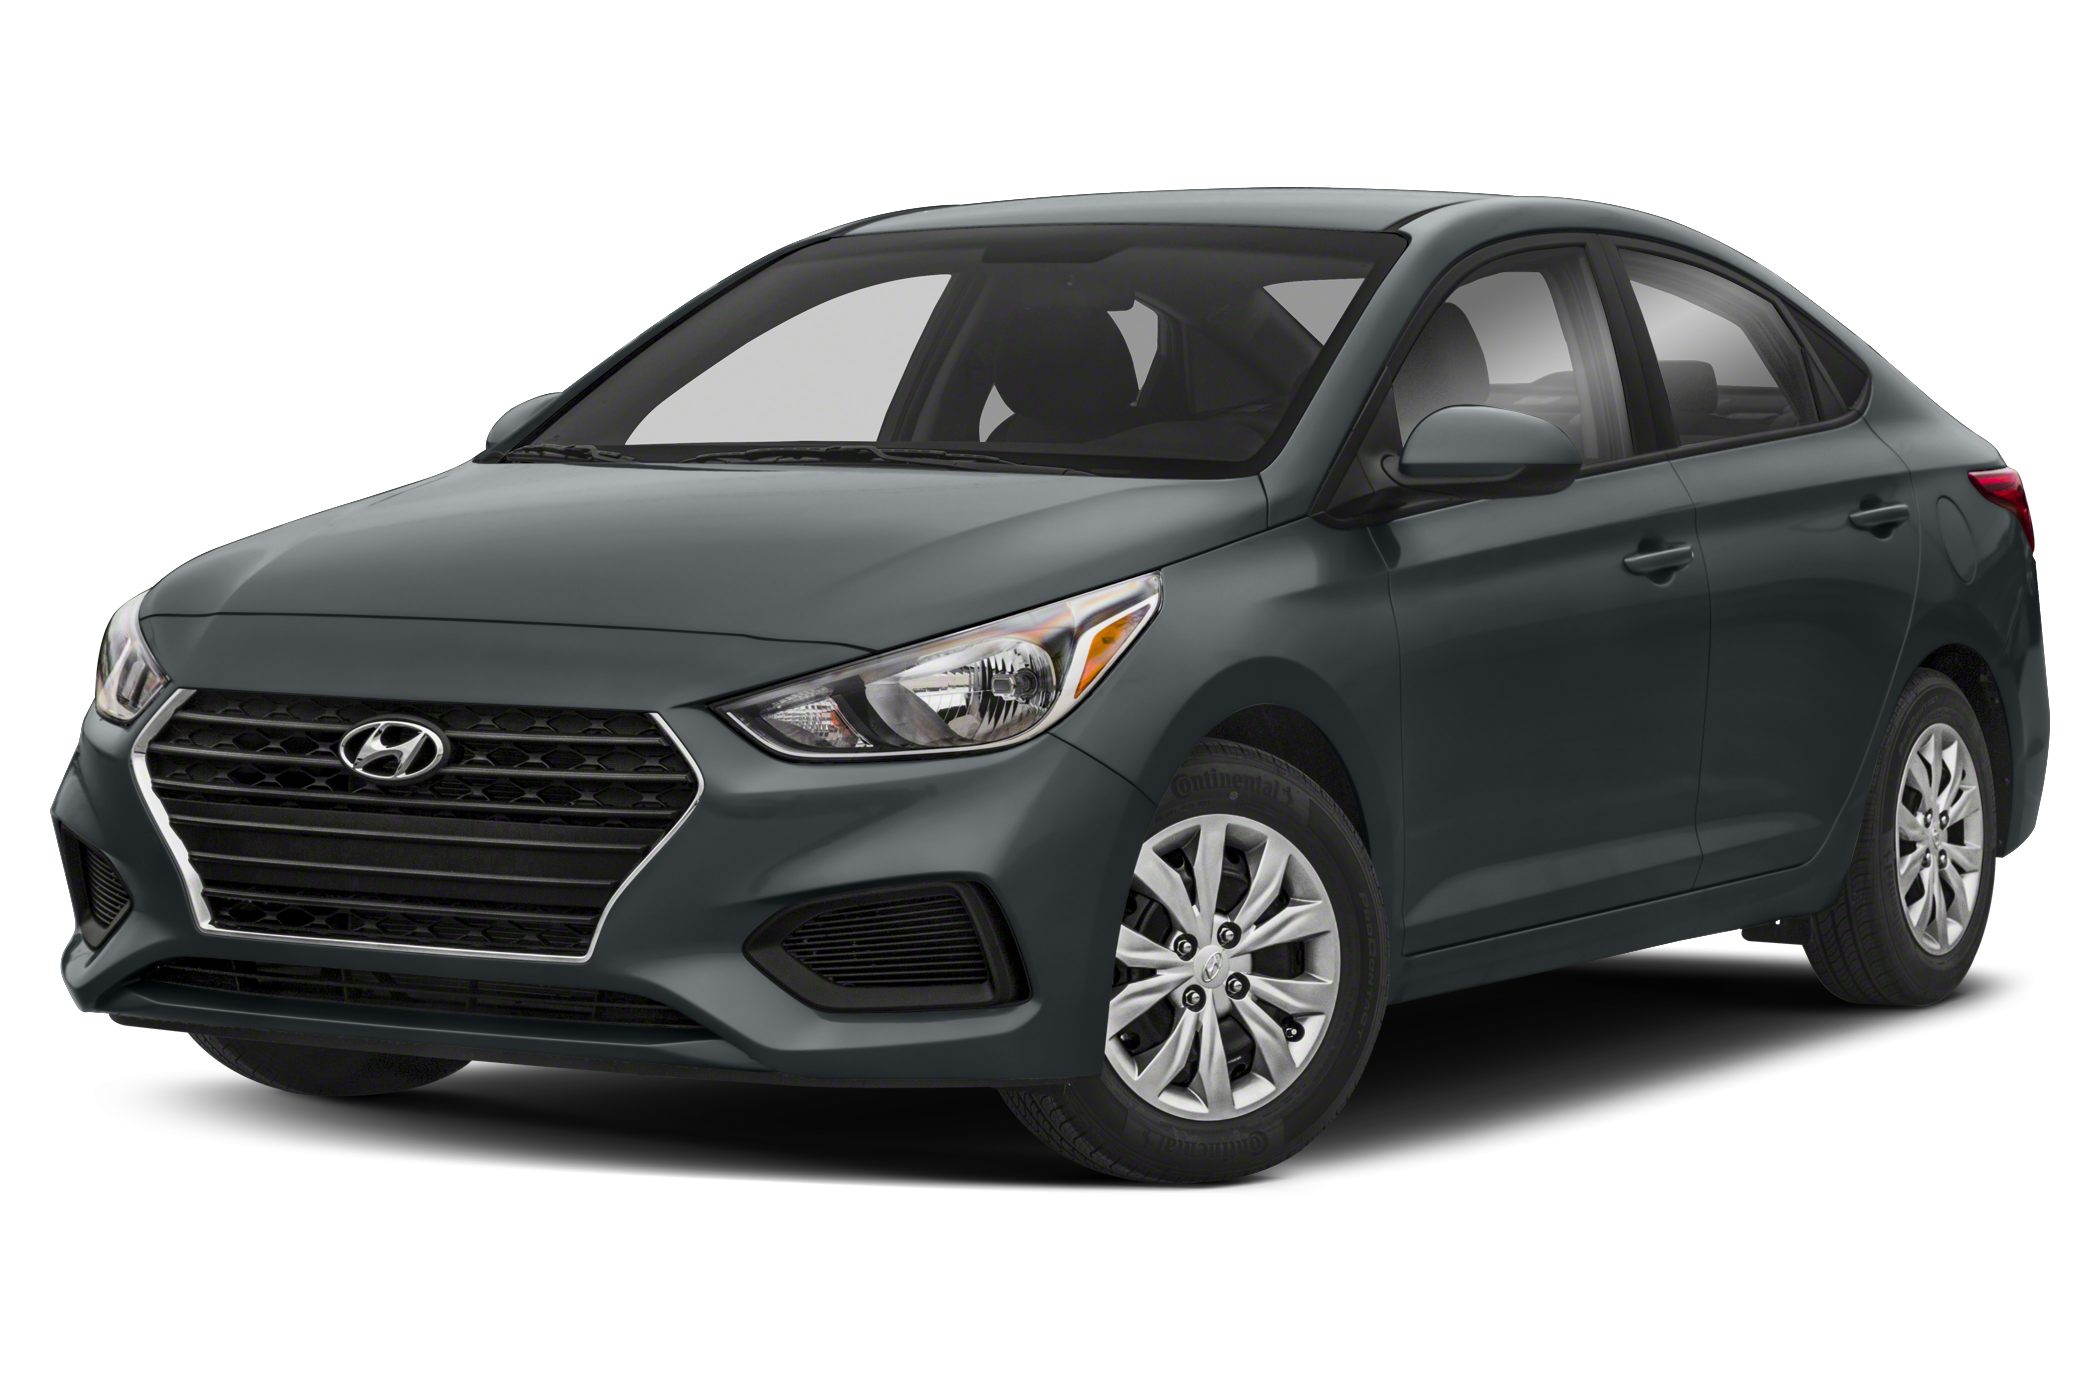 Hyundai Accent Hatchback 2017 Review >> 2018 Hyundai Accent Owner Reviews And Ratings